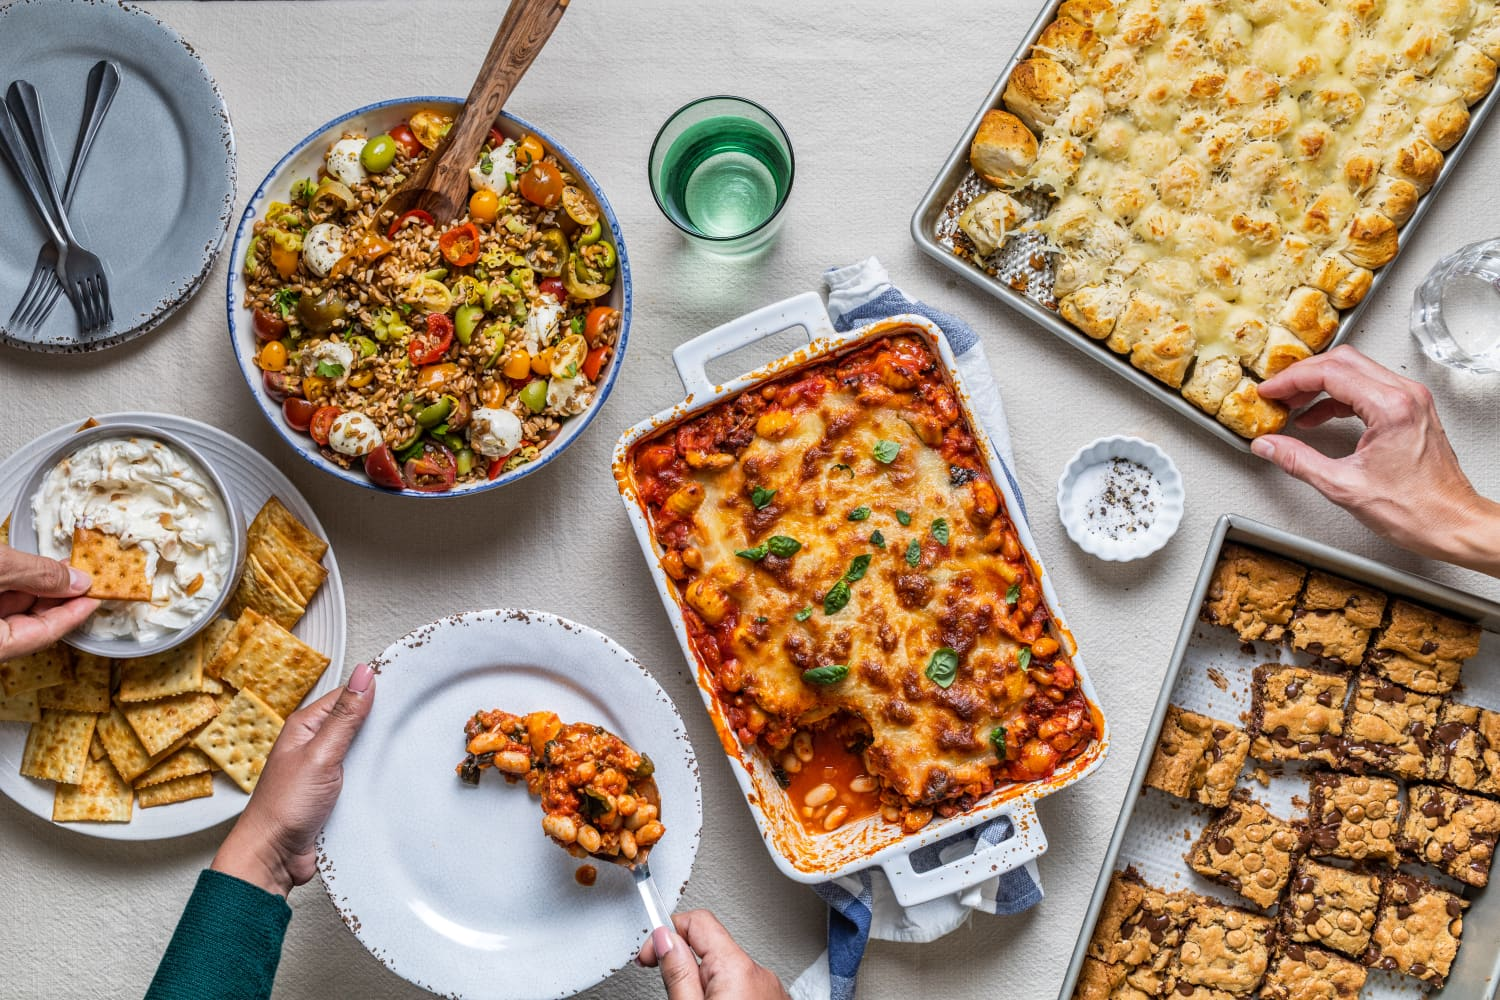 Your Ultimate Potluck Menu: 5 Foolproof Dishes Guaranteed to Please